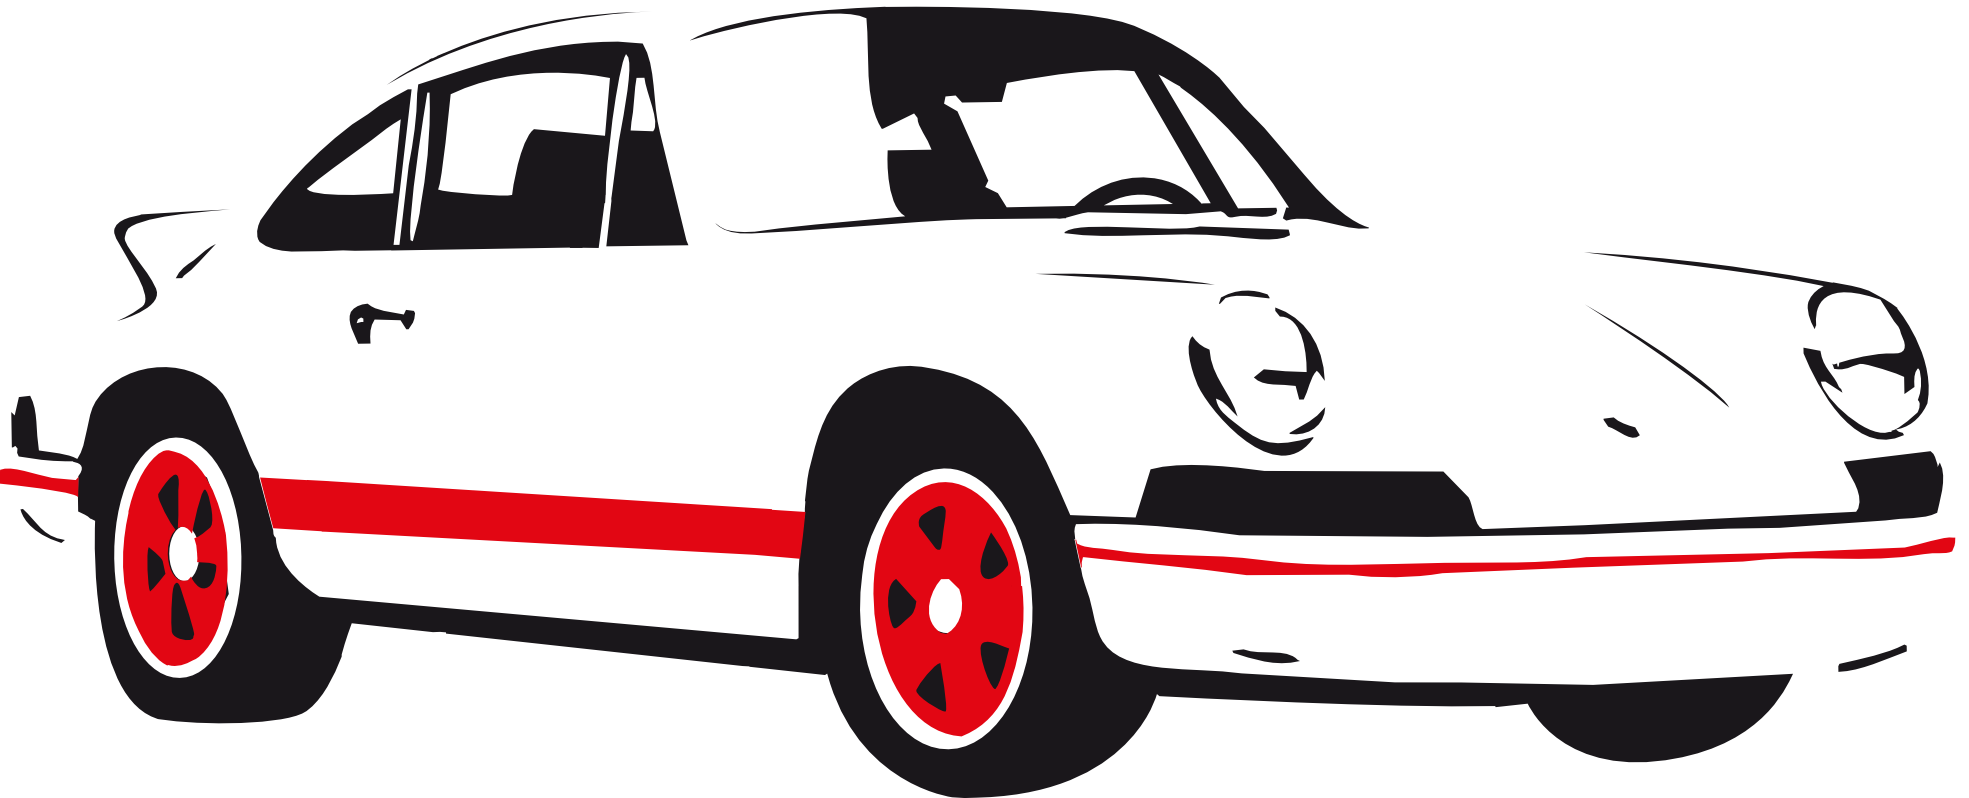 Car clipart high resolution jpg library download Car clipart high resolution - ClipartFest jpg library download